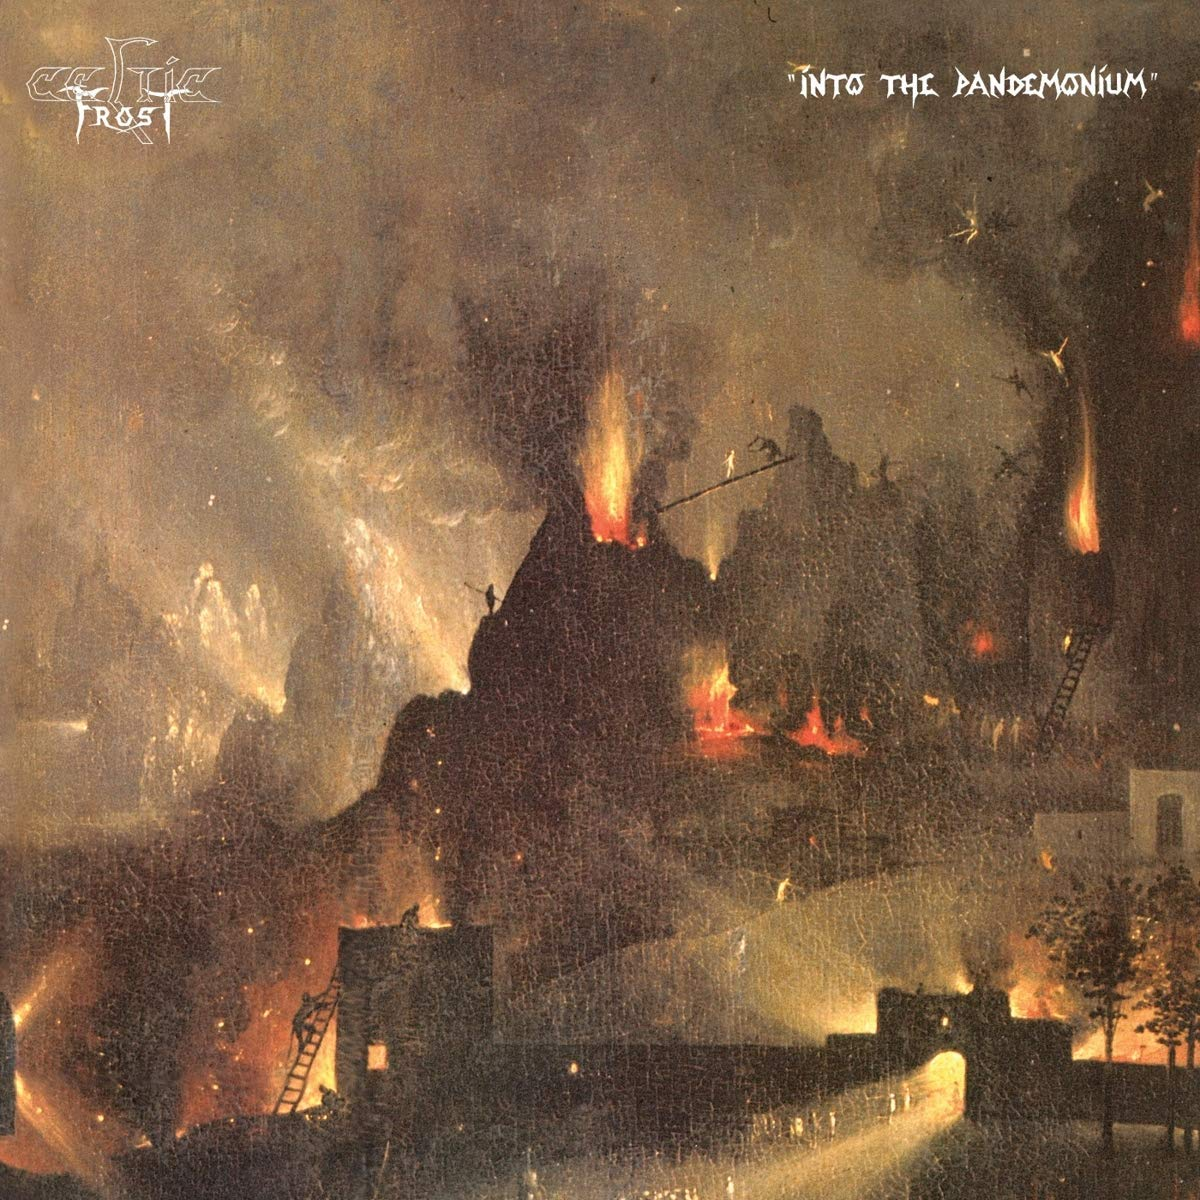 Into The Pandemonium: Celtic Frost, Celtic Frost: Amazon.fr: Musique